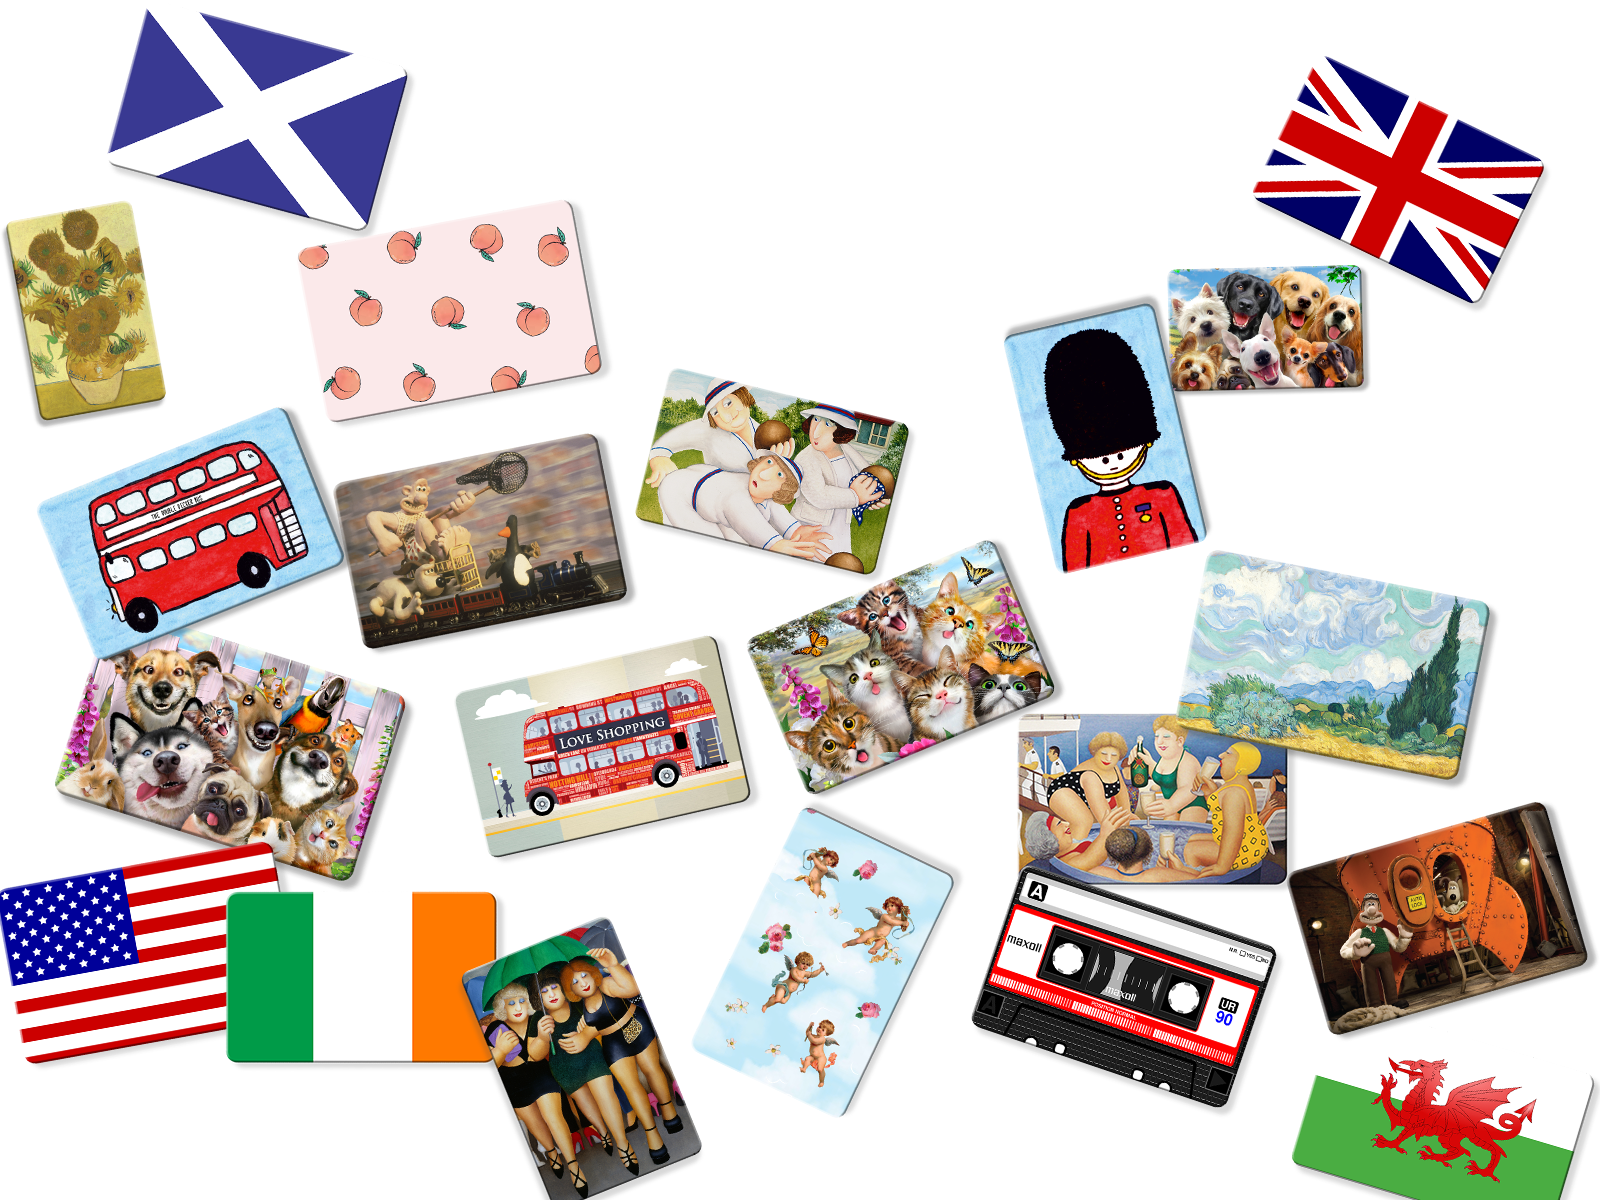 Showing a wide range of designs from Myne Cards